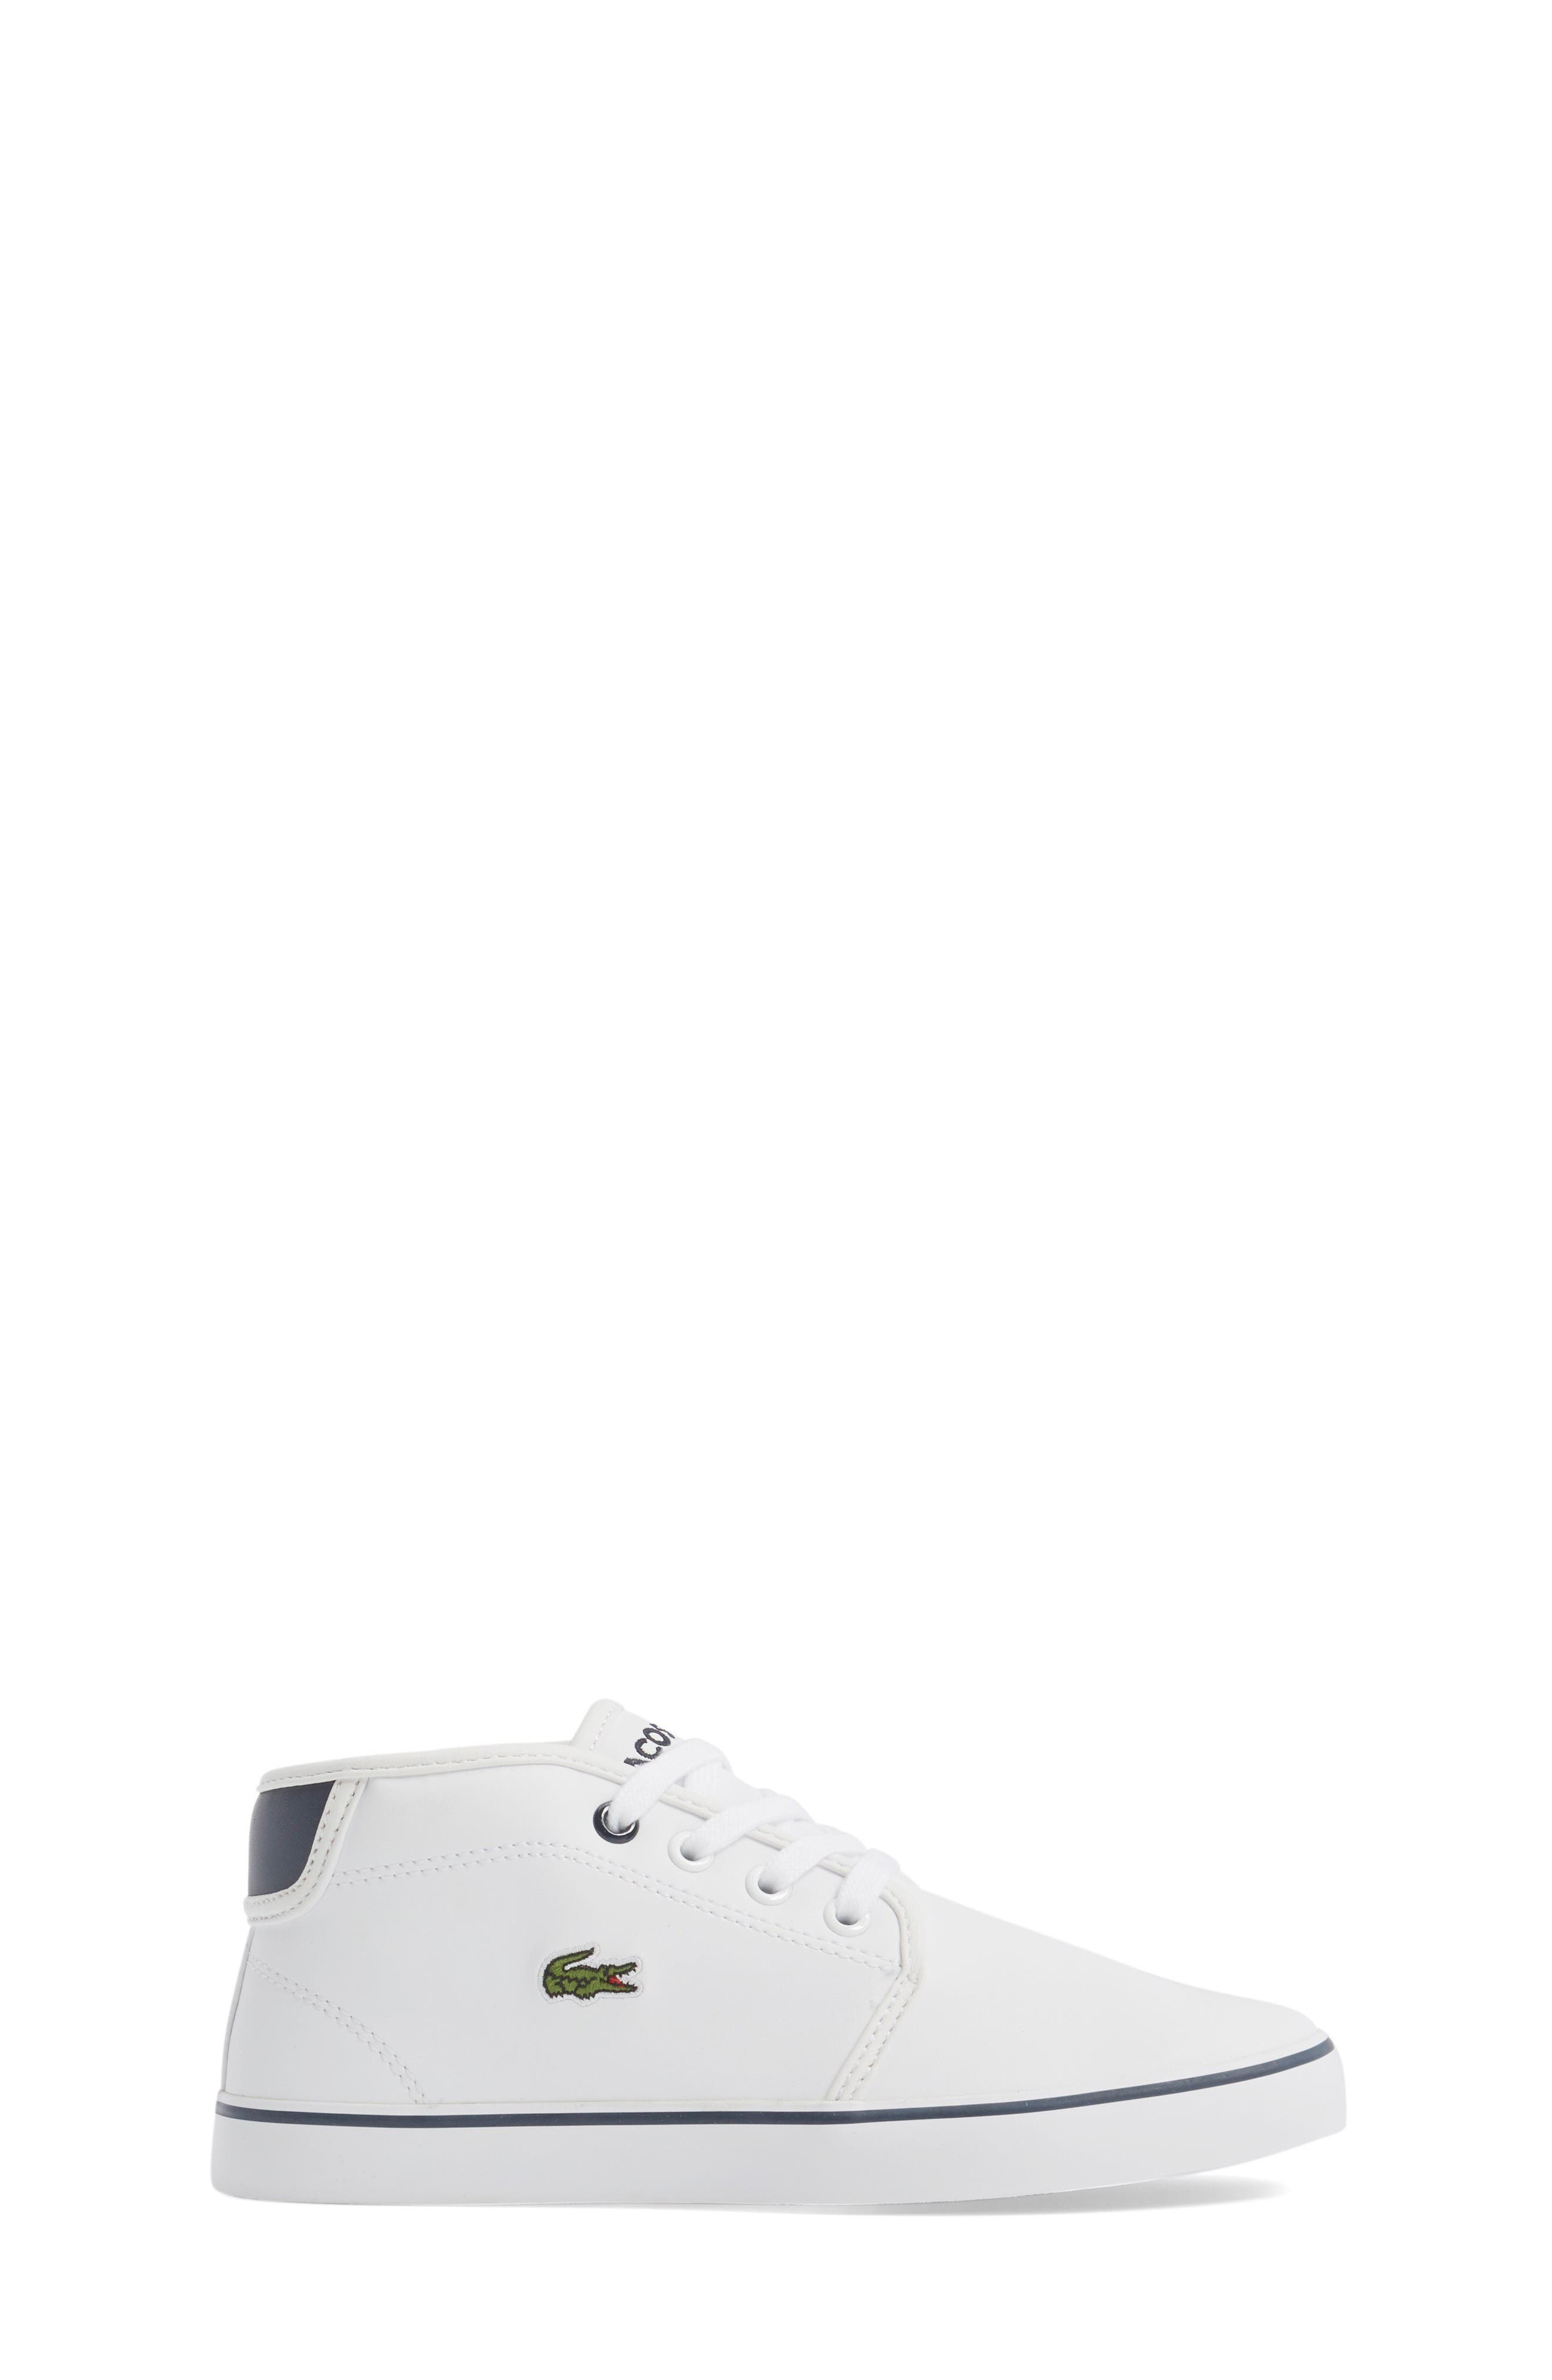 Ampthill High Top Sneaker,                             Alternate thumbnail 3, color,                             White/ Navy Faux Leather